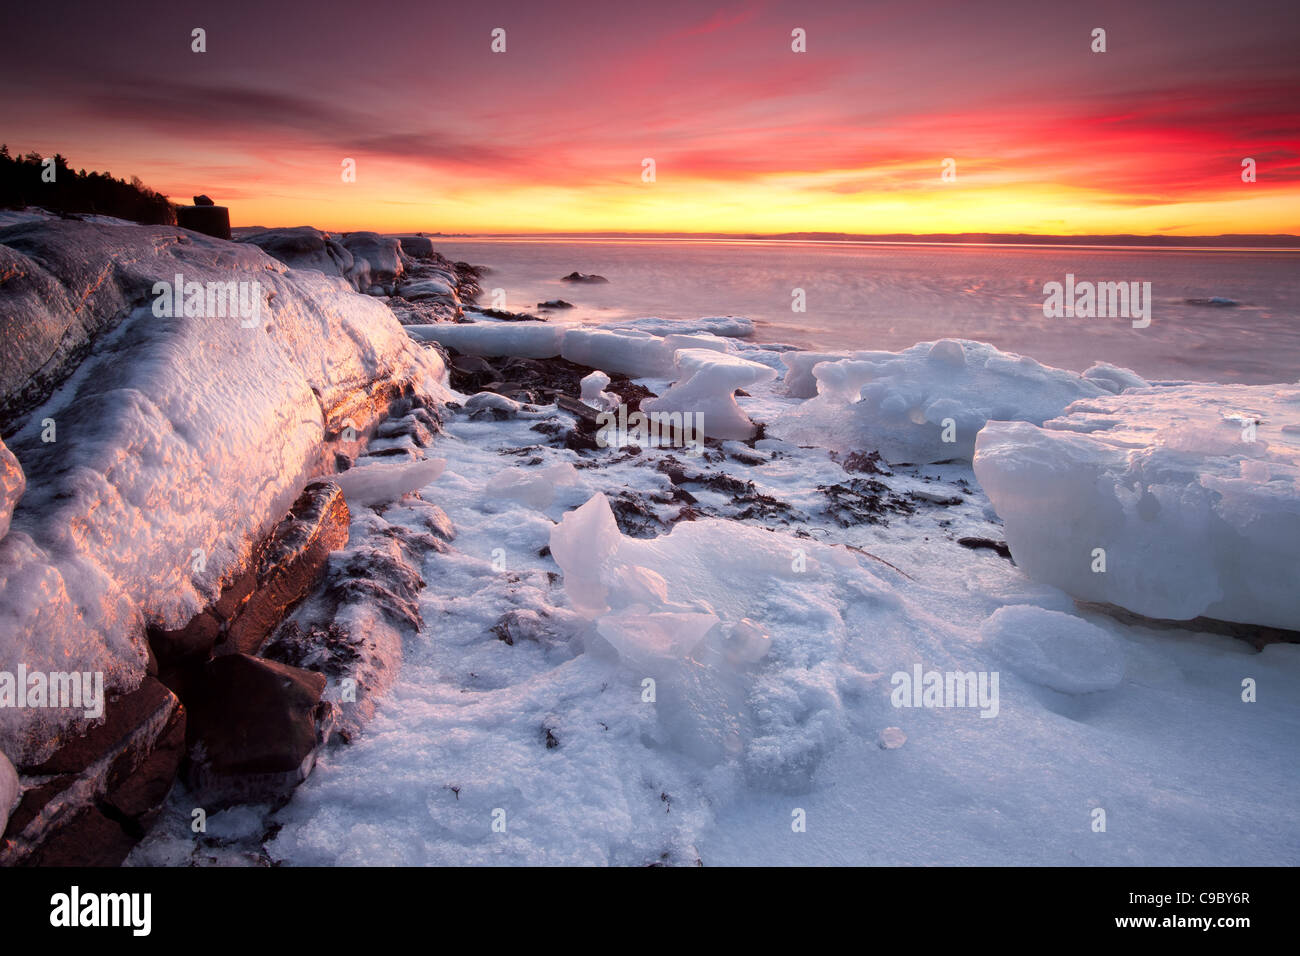 Beautiful winter sunset by the Oslofjord at the island Jeløy, in Moss kommune, Østfold fylke, Norway. - Stock Image